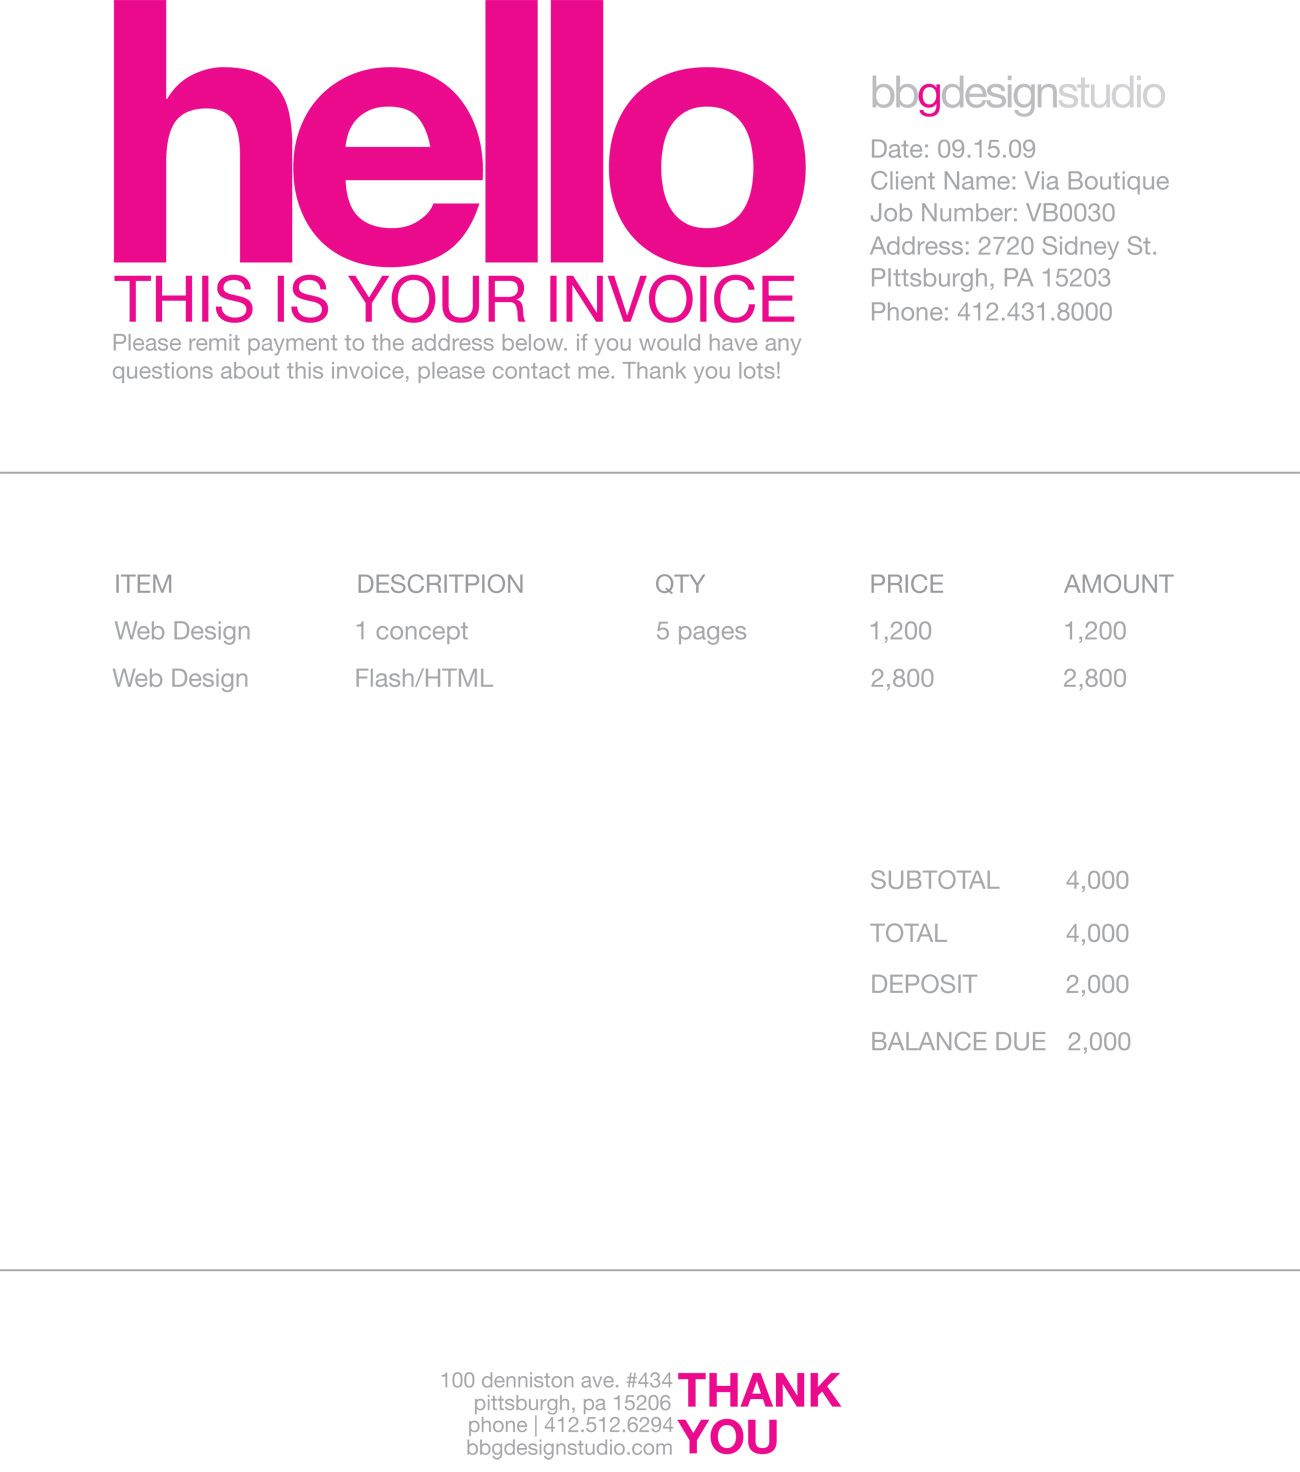 Aaaaeroincus  Splendid  Images About Invoice Design On Pinterest With Foxy Invoice Templates Download Besides Debit Note Invoice Furthermore Car Msrp Vs Invoice Price With Enchanting Invoice And Statement Also How To Get Invoice Price On A New Car In Addition Limited Company Invoice Template And Australian Tax Invoice Template As Well As Printing Invoice Additionally Free Invoice Templates Download From Pinterestcom With Aaaaeroincus  Foxy  Images About Invoice Design On Pinterest With Enchanting Invoice Templates Download Besides Debit Note Invoice Furthermore Car Msrp Vs Invoice Price And Splendid Invoice And Statement Also How To Get Invoice Price On A New Car In Addition Limited Company Invoice Template From Pinterestcom